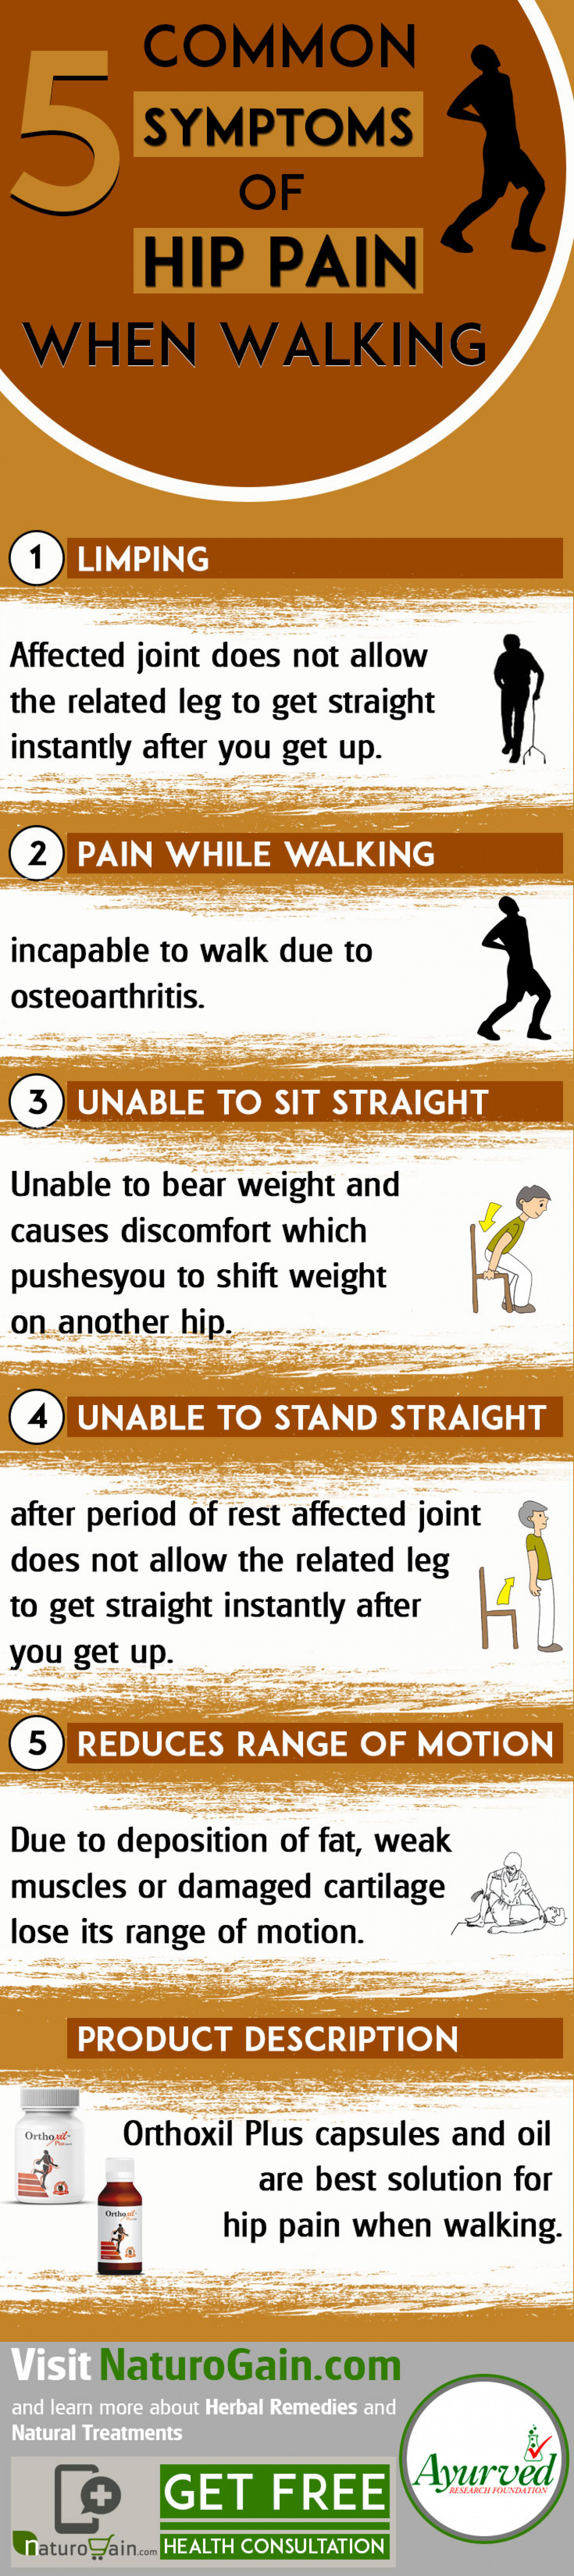 5 Common Symptoms of Hip Pain When Walking Infographic